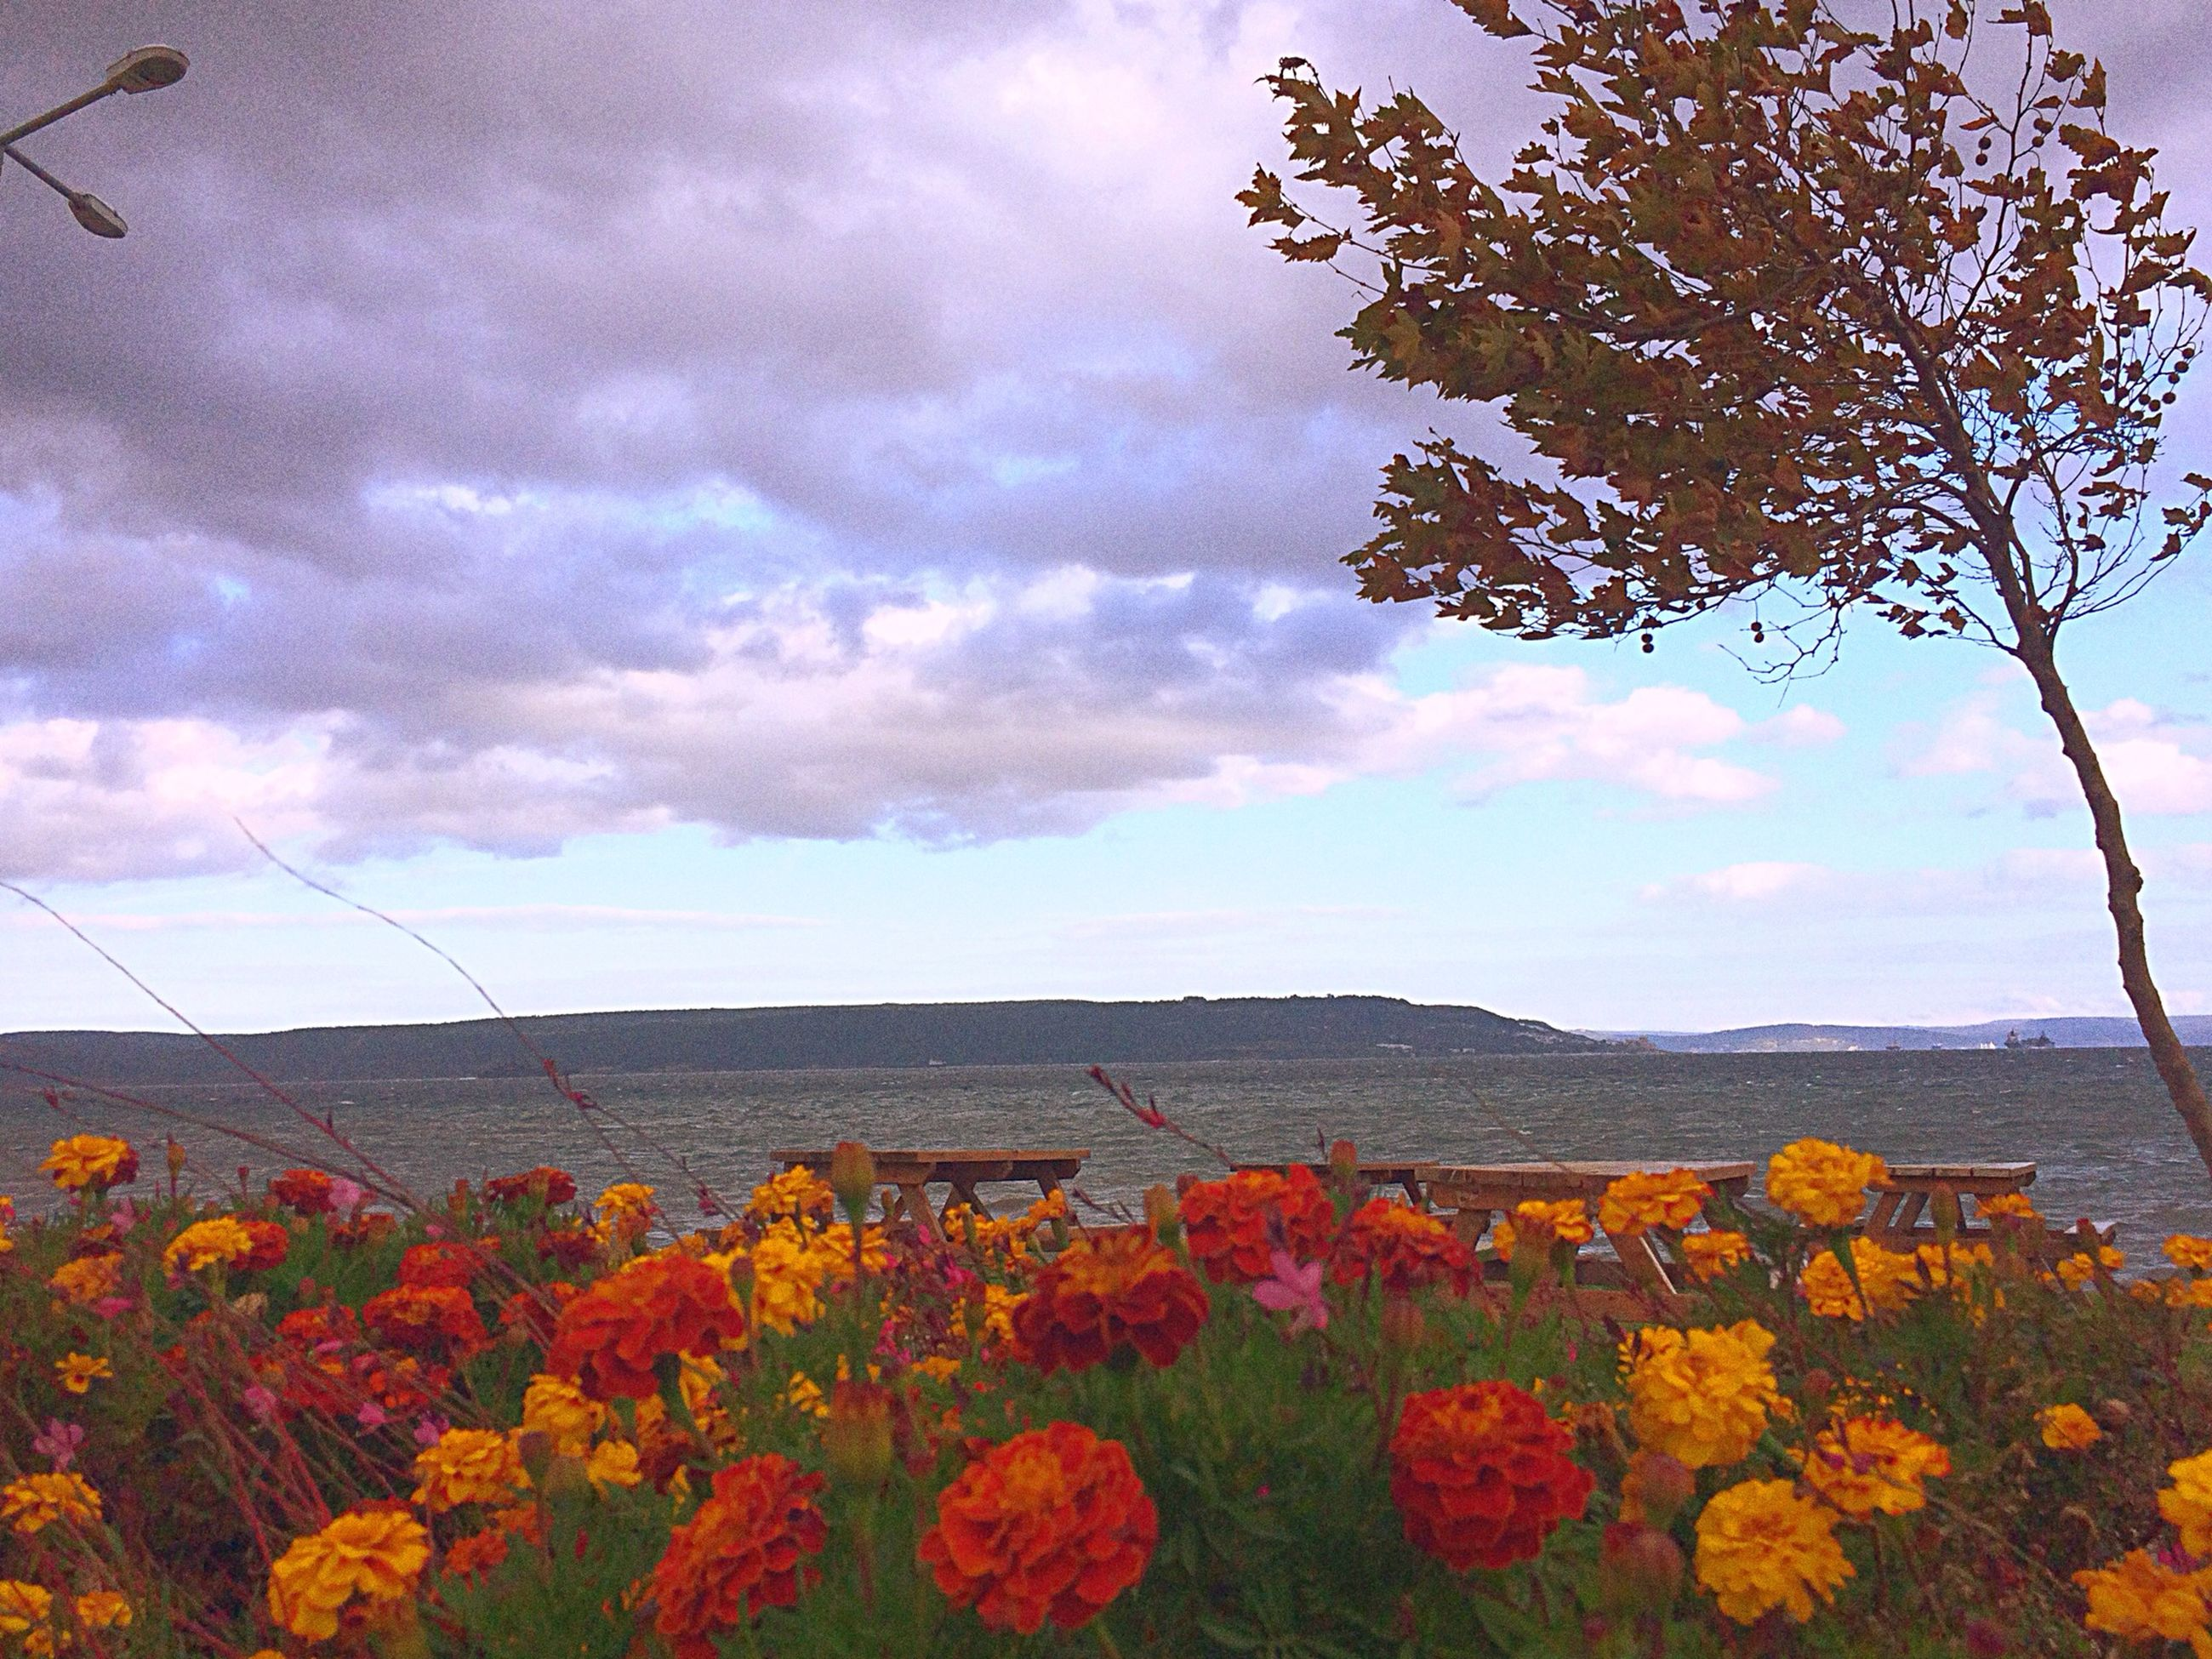 flower, sky, beauty in nature, cloud - sky, nature, growth, tranquil scene, scenics, cloudy, freshness, tranquility, cloud, tree, landscape, fragility, field, plant, mountain, blooming, rural scene